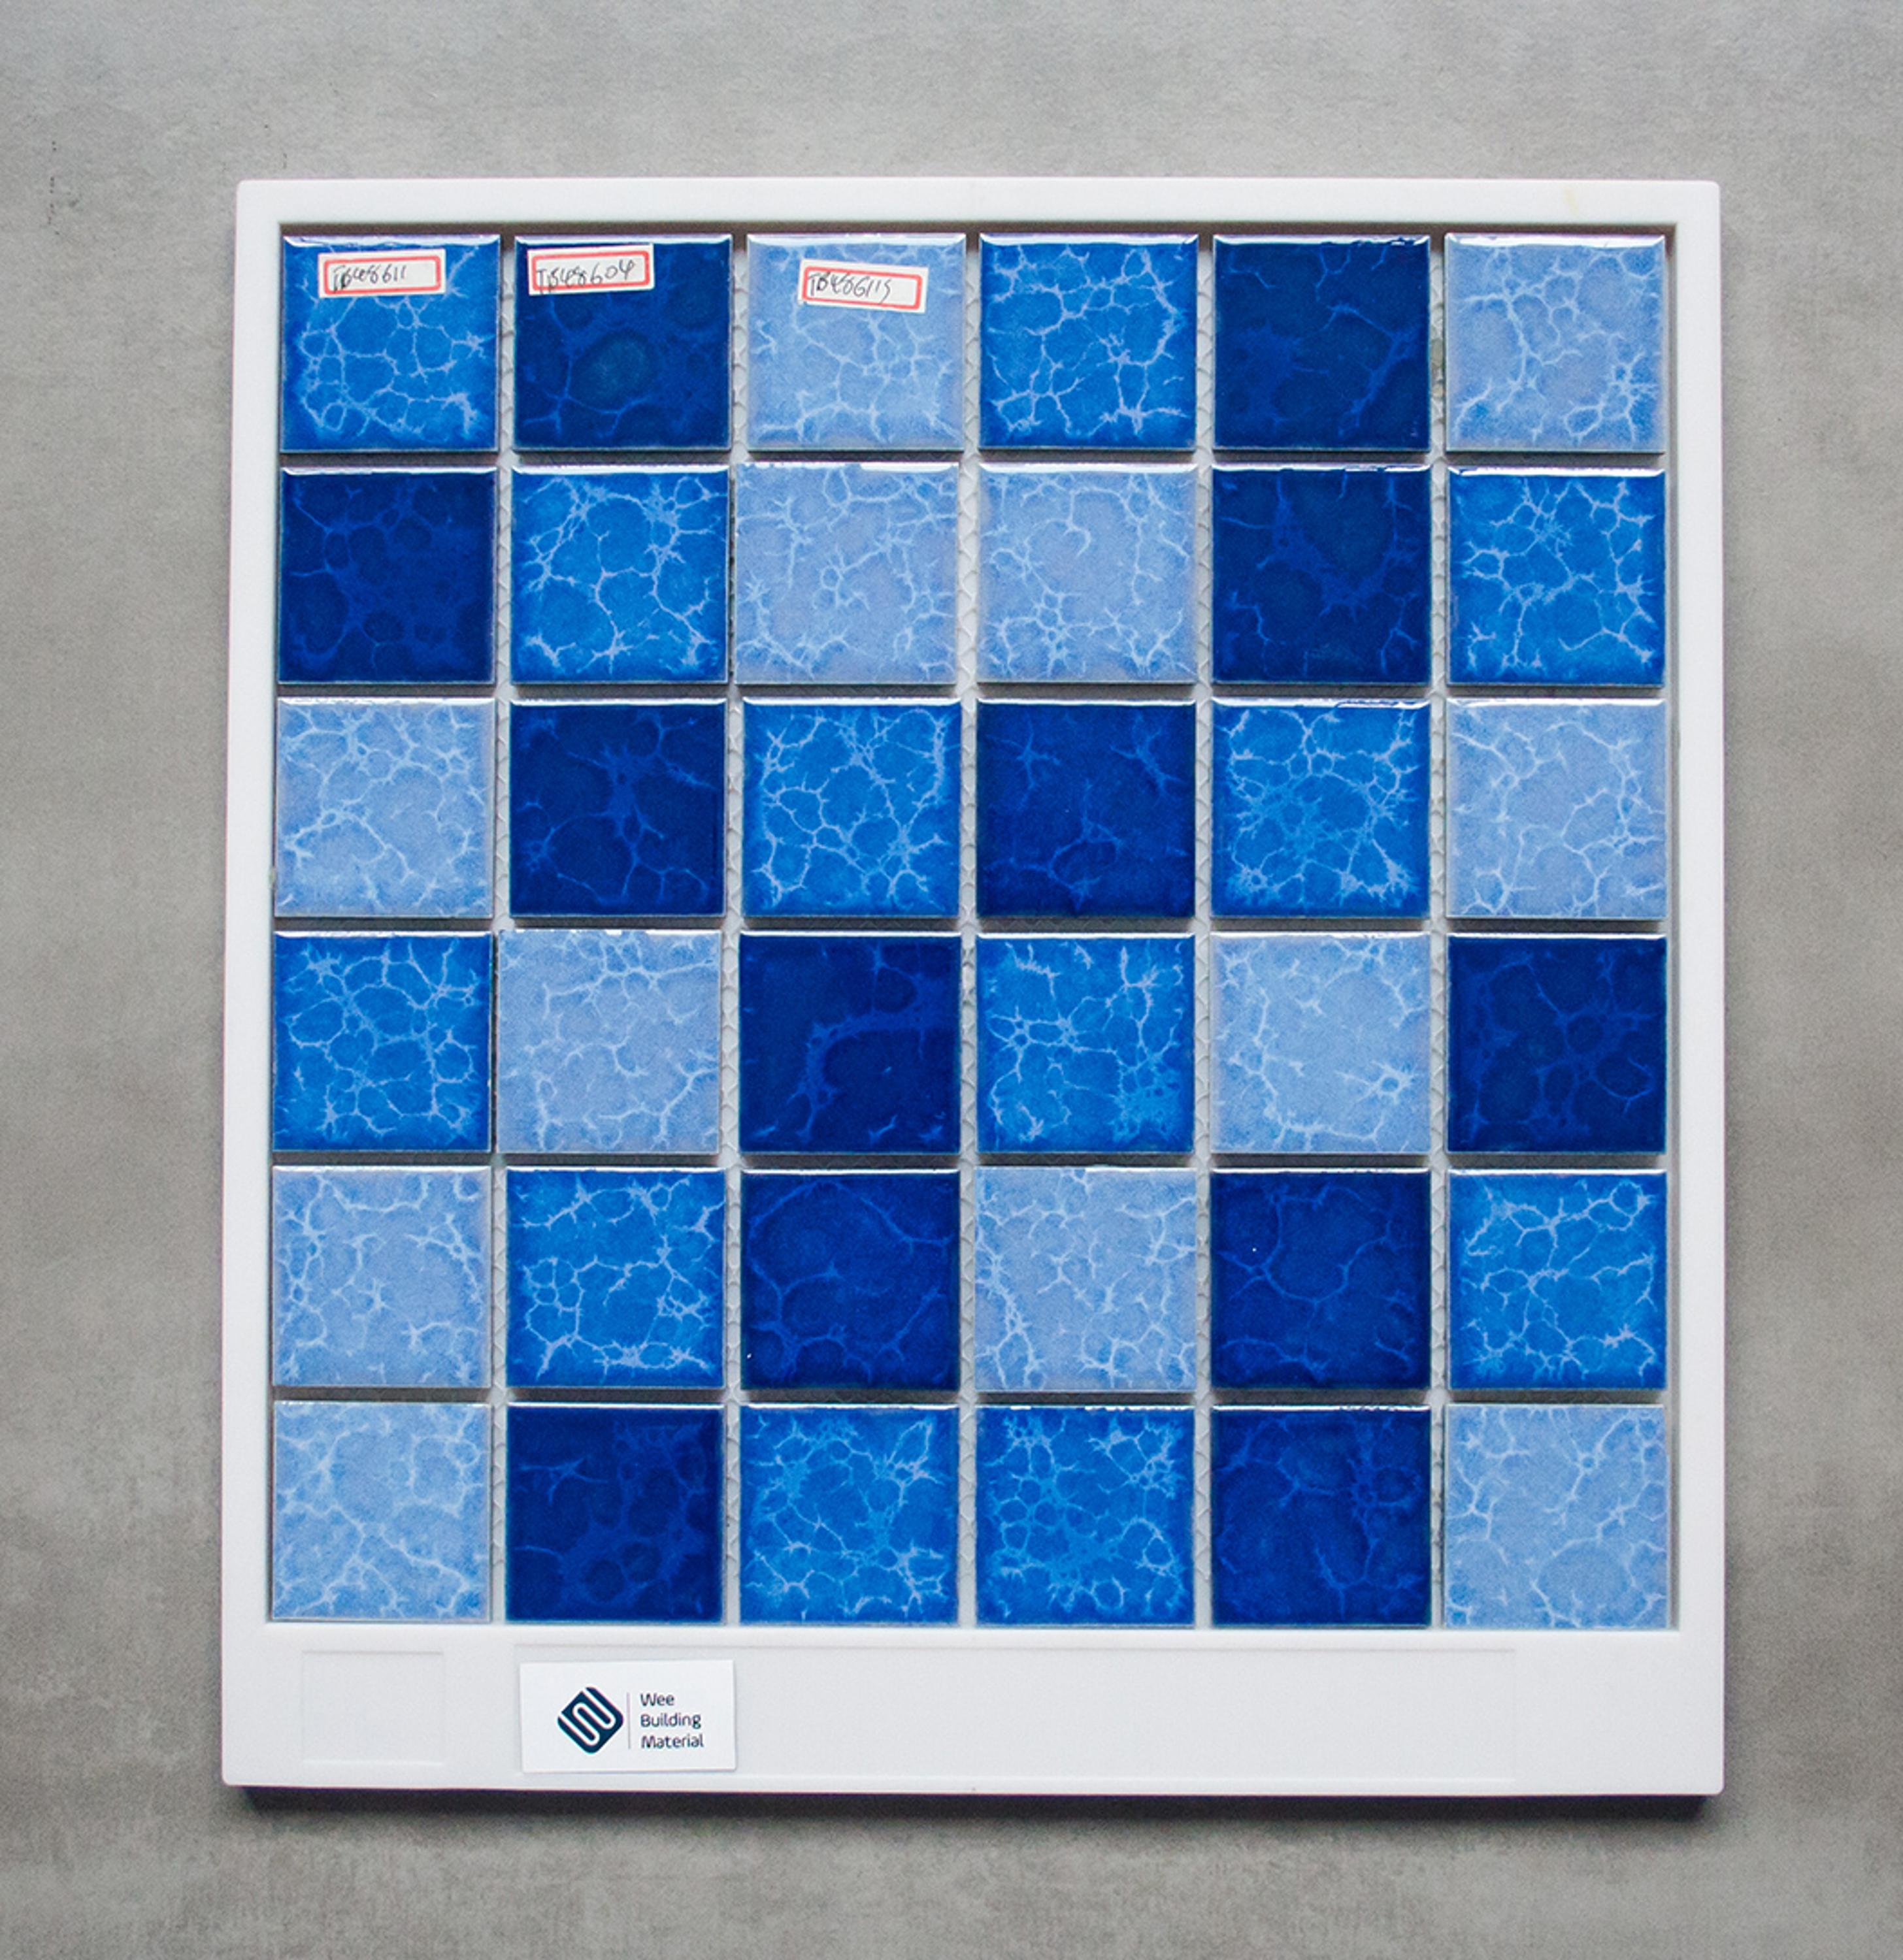 306x306mm Pool Tiles, 306x306mm Pool Tiles Suppliers and ...